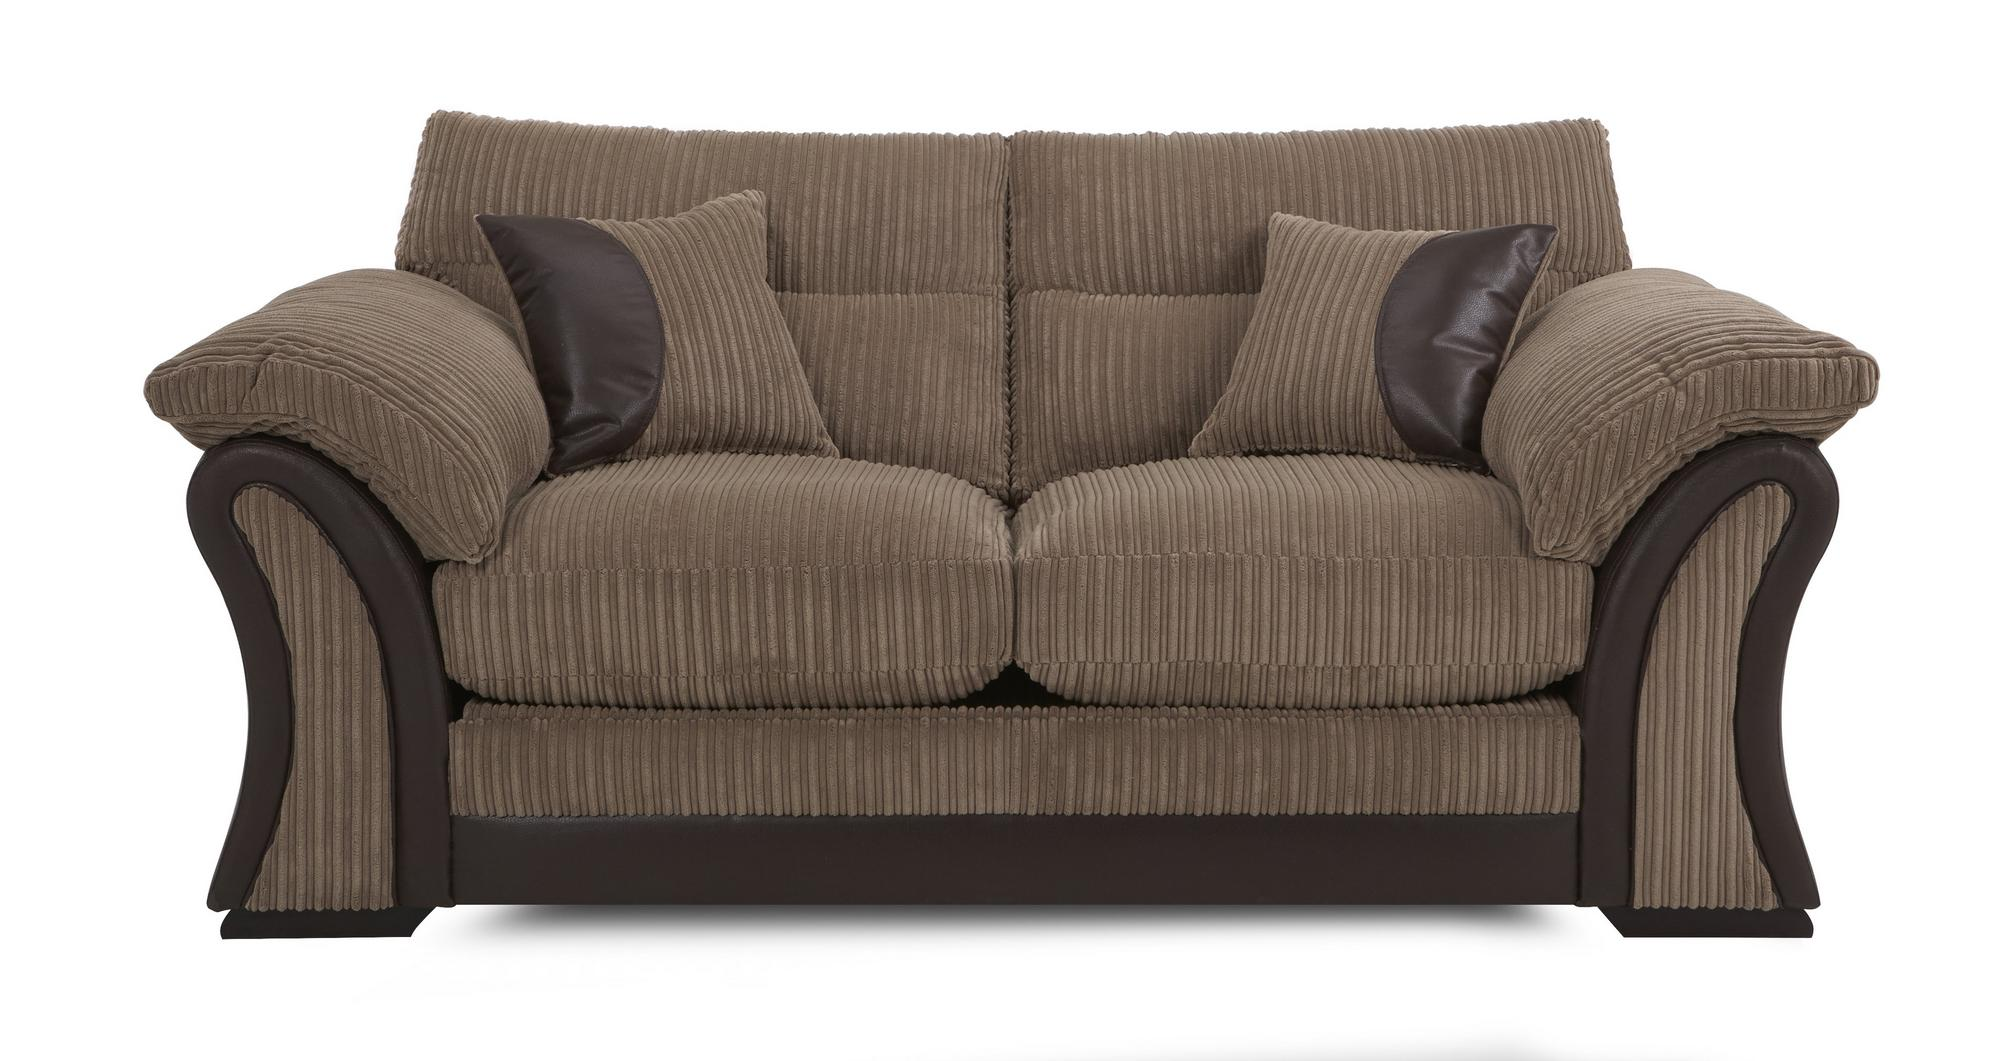 Dfs Walton Nutmeg Fabric Large 2 Seater Sofa Bed Storage